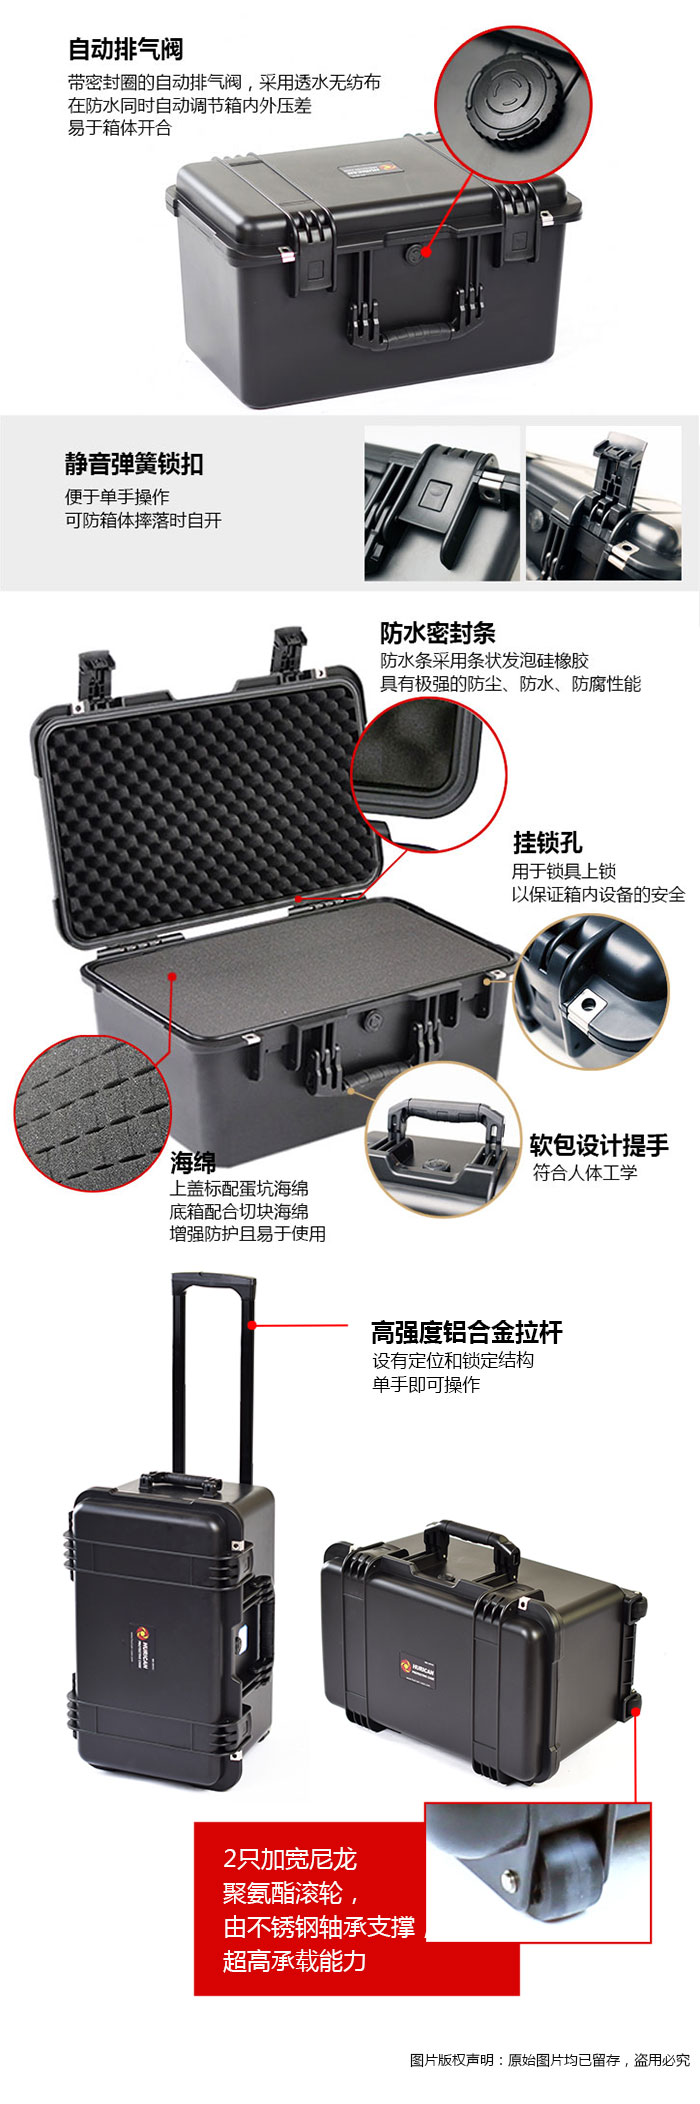 protective_cases_HR2416_0